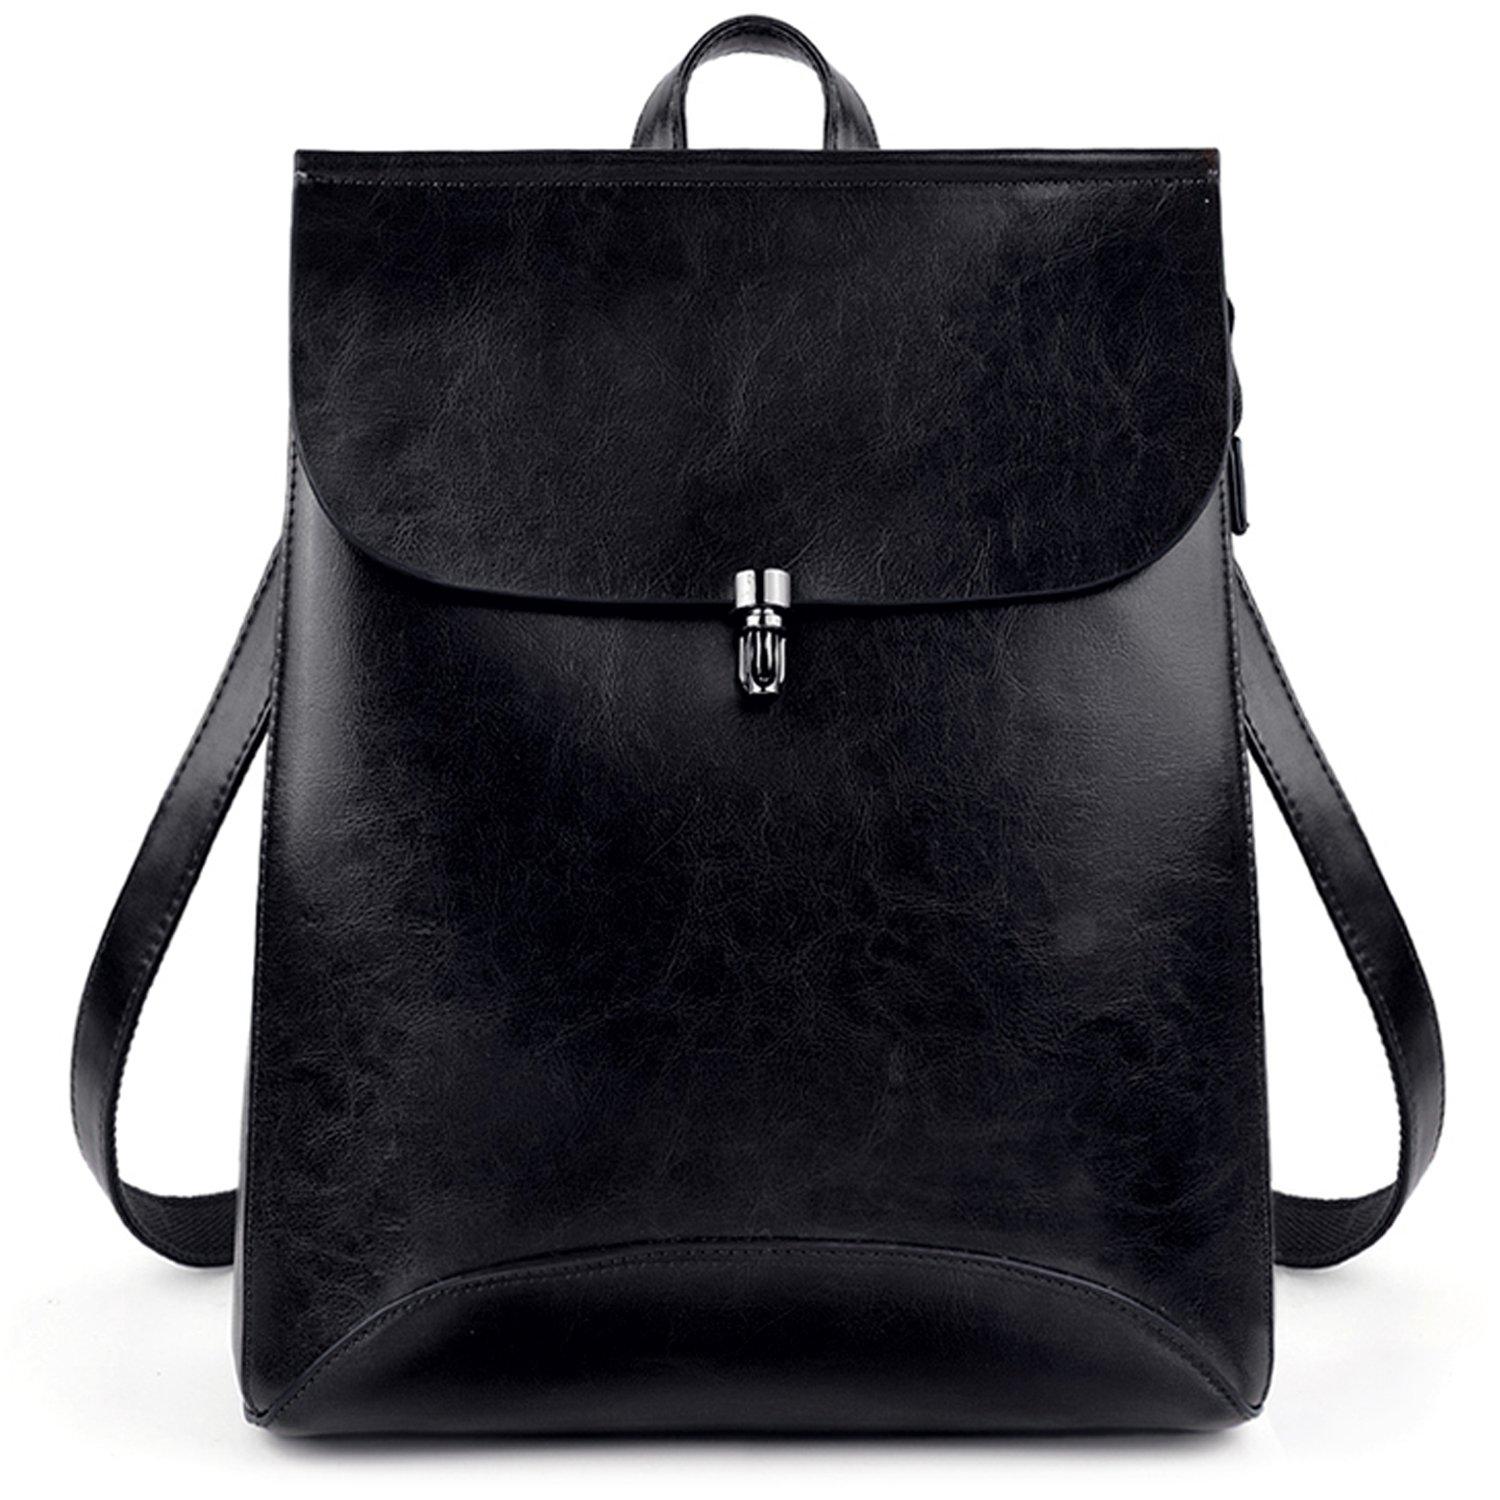 UTO Women's Pu Leather Backpack Purse Ladies Casual Shoulder Bag School Bag for Girls Large Black CA 18000441-1ca